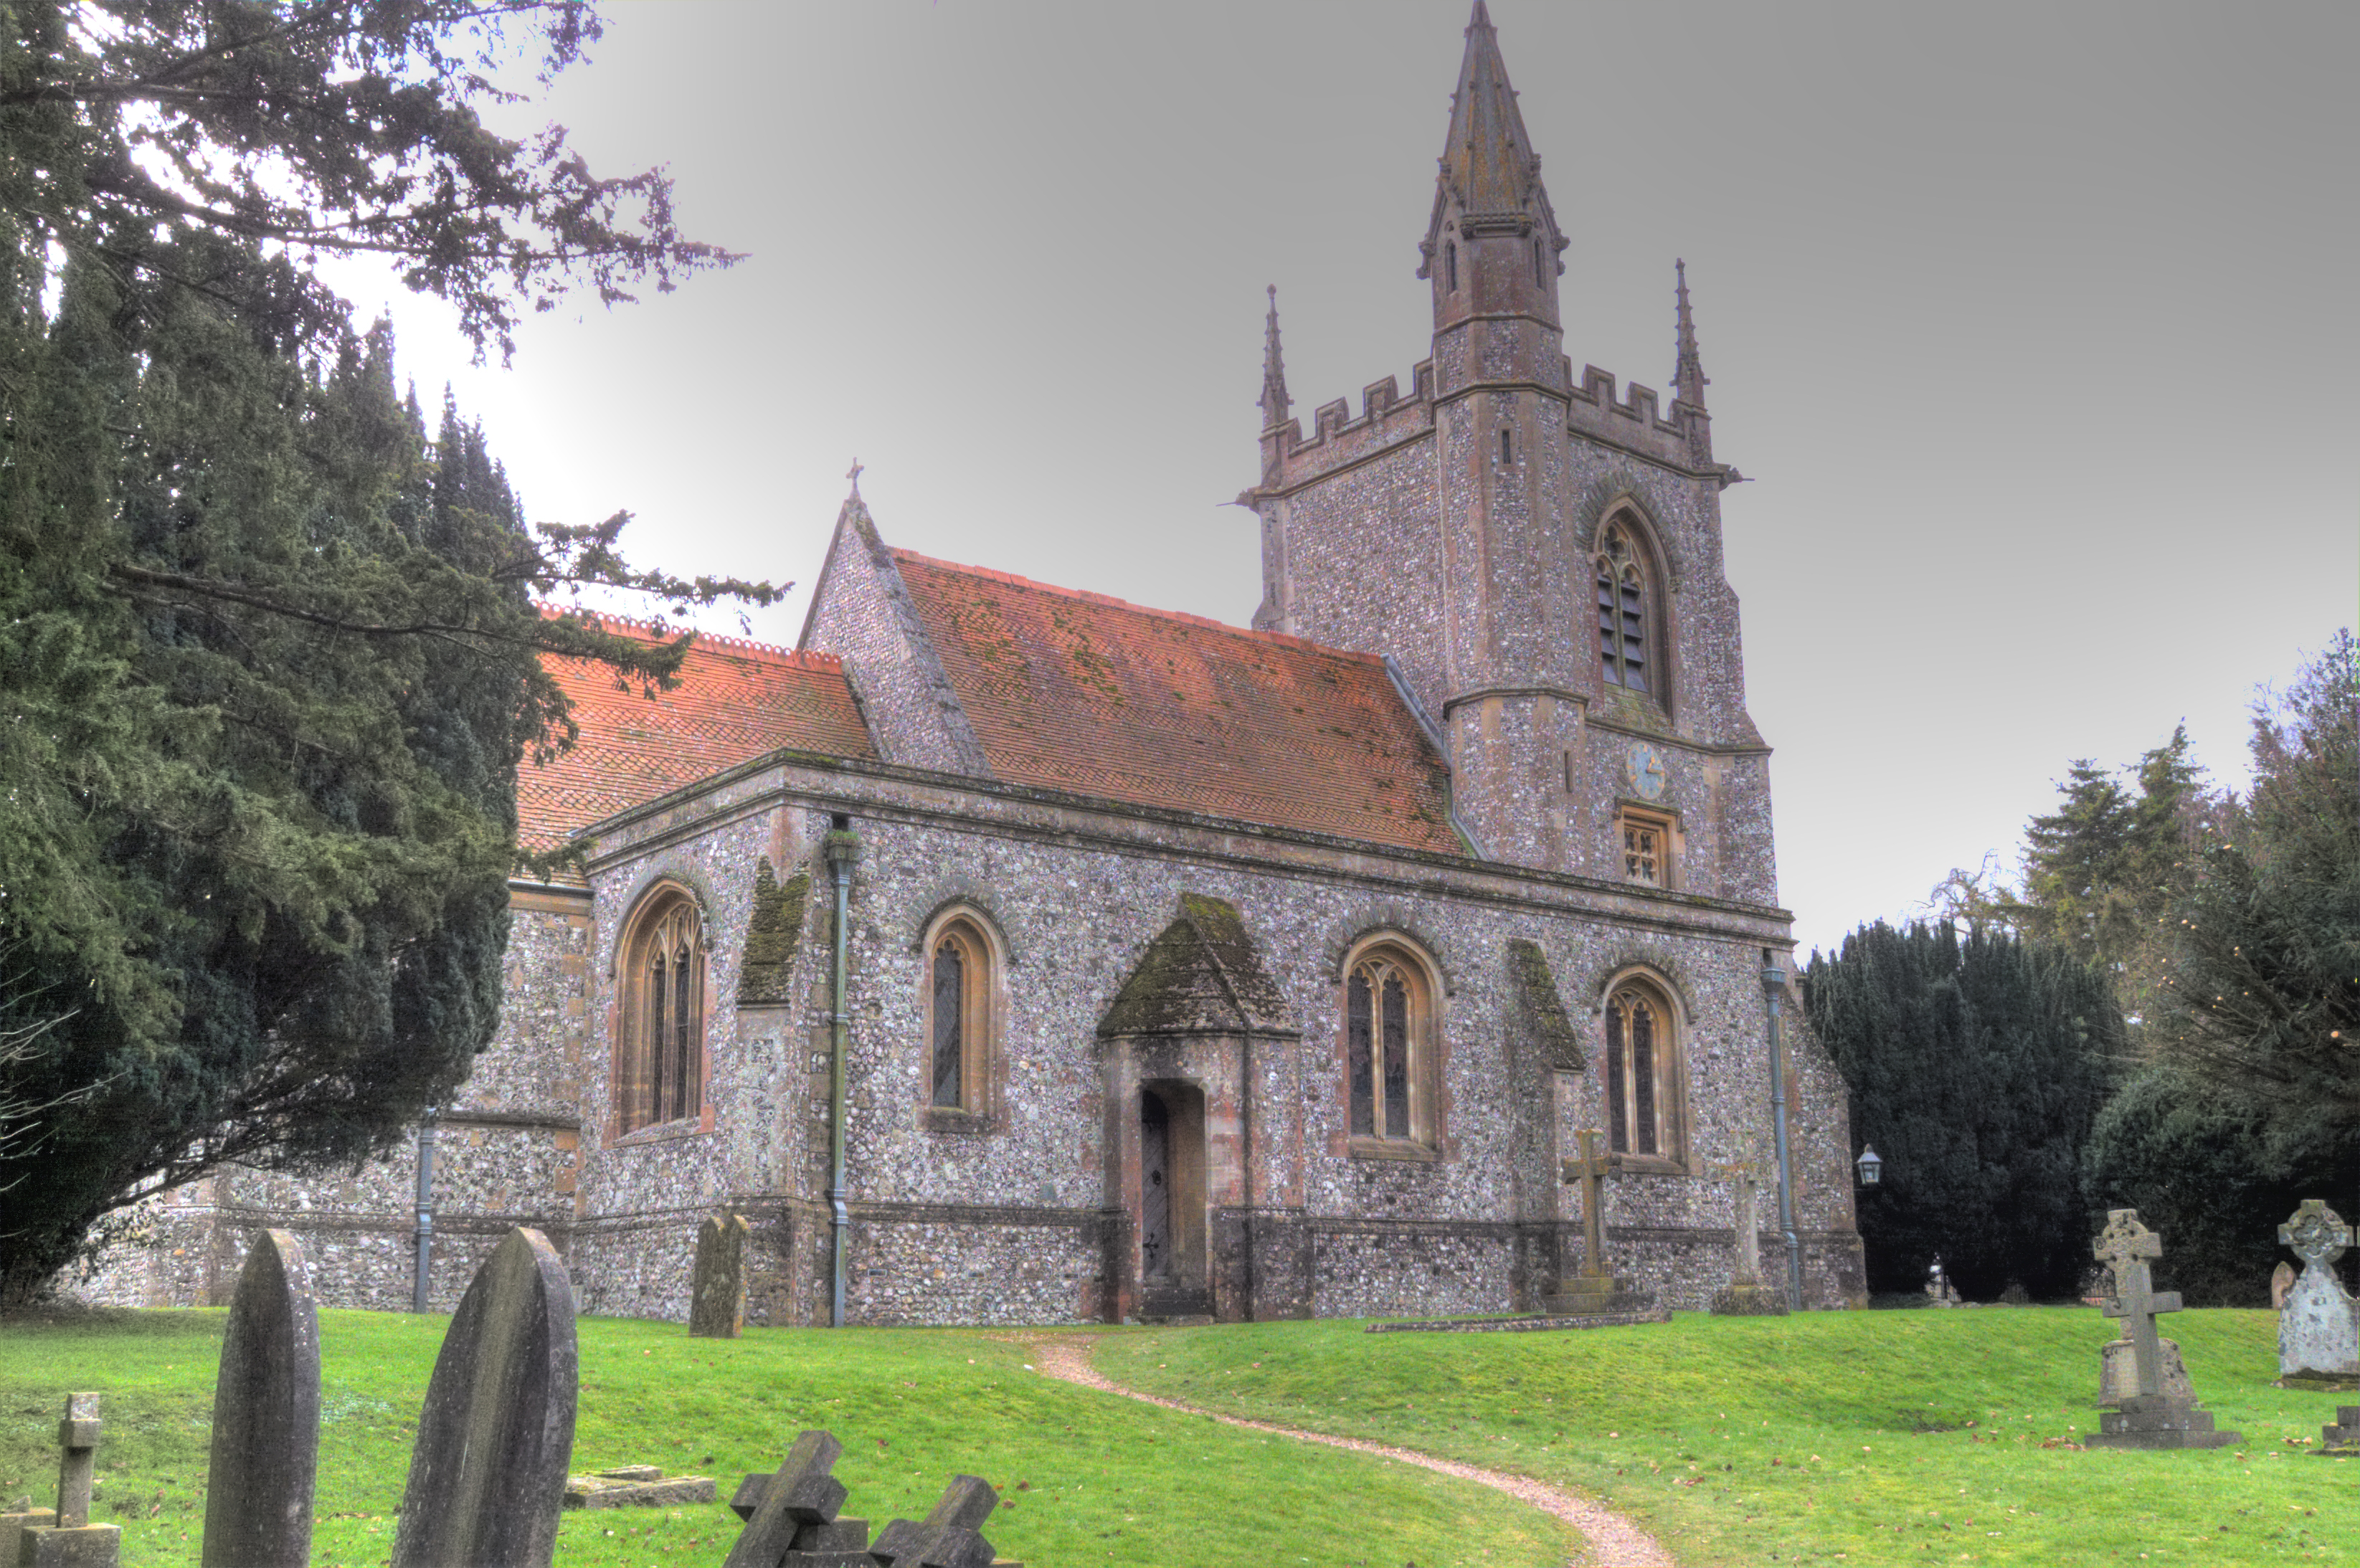 St Leonards Parish Church, Oakley, Hampshire-31Jan2010.jpg